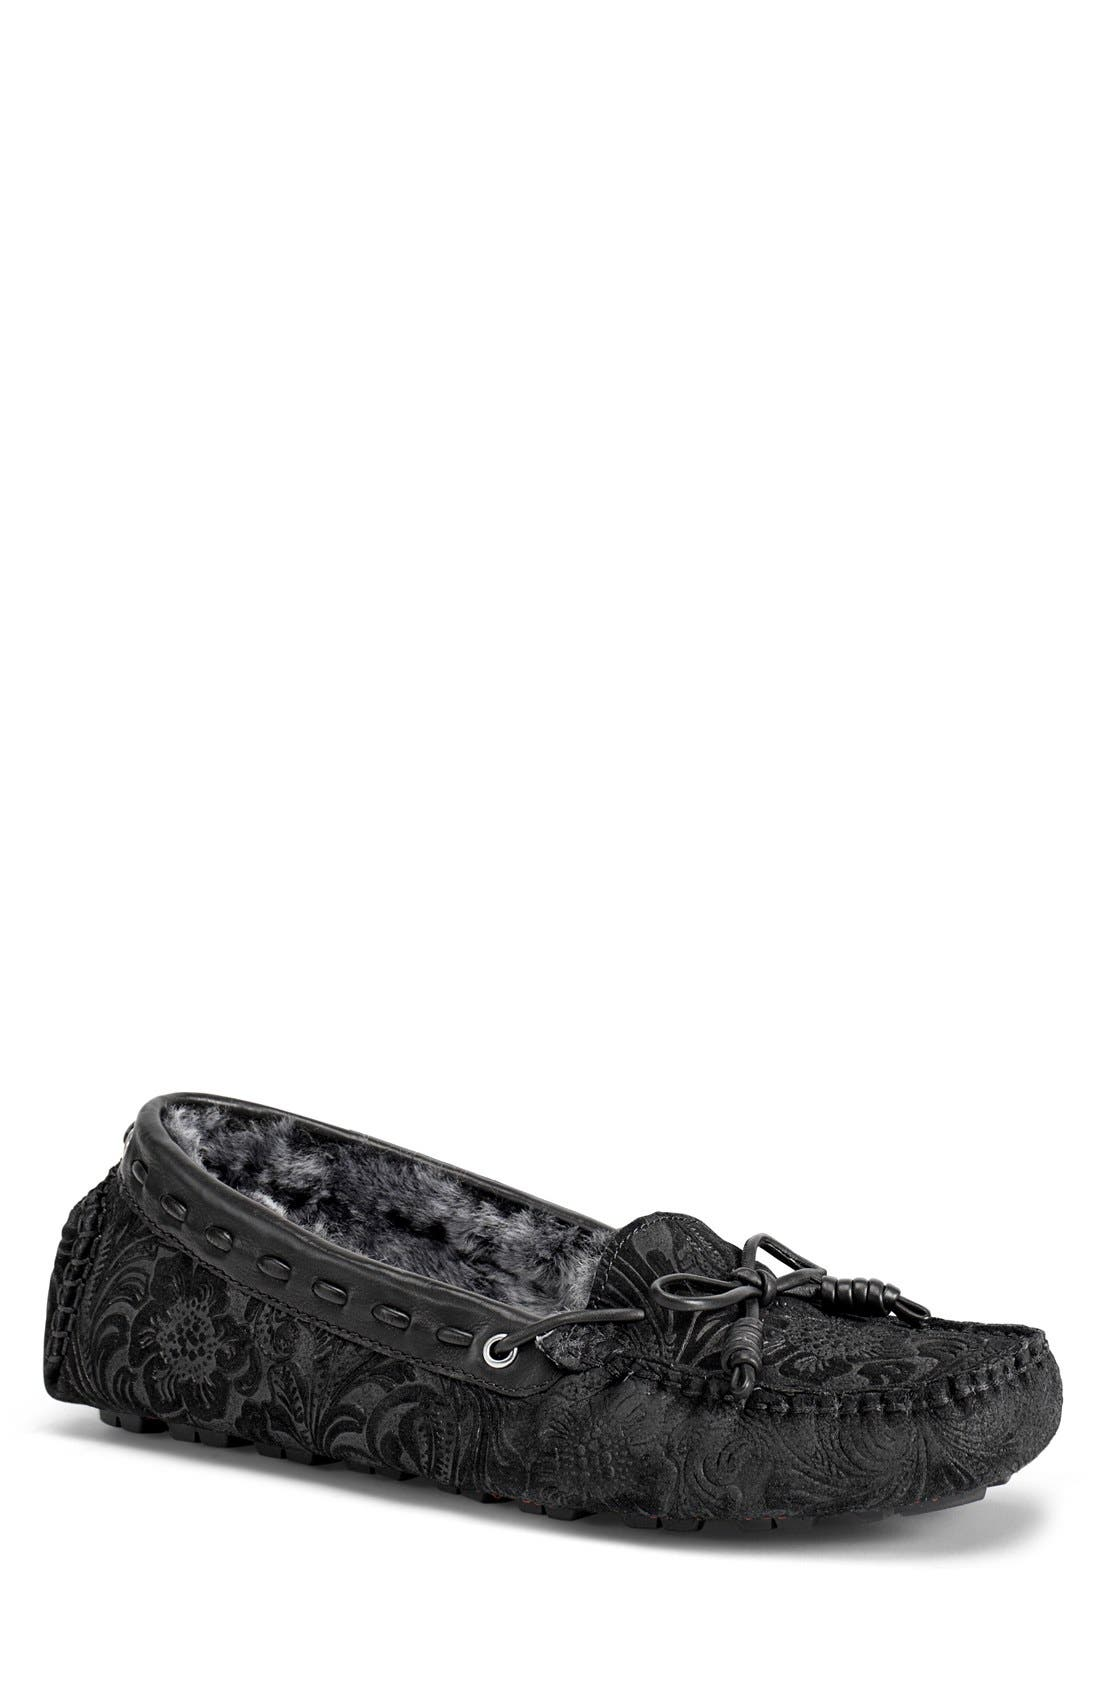 'Sophia' Genuine Shearling Lined Driving Loafer,                             Main thumbnail 1, color,                             008